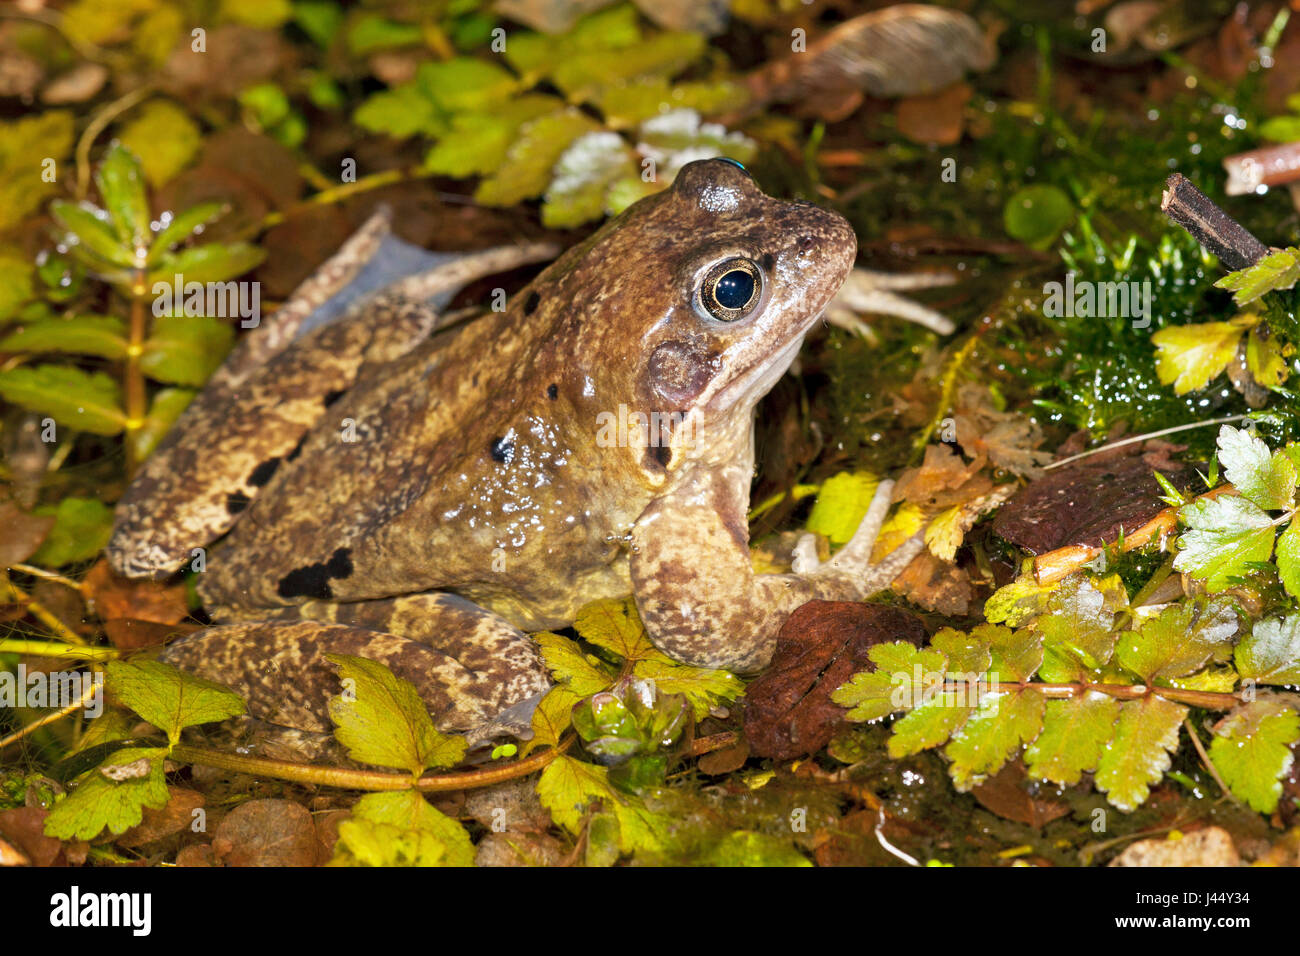 male common frog in a garden pond at night - Stock Image